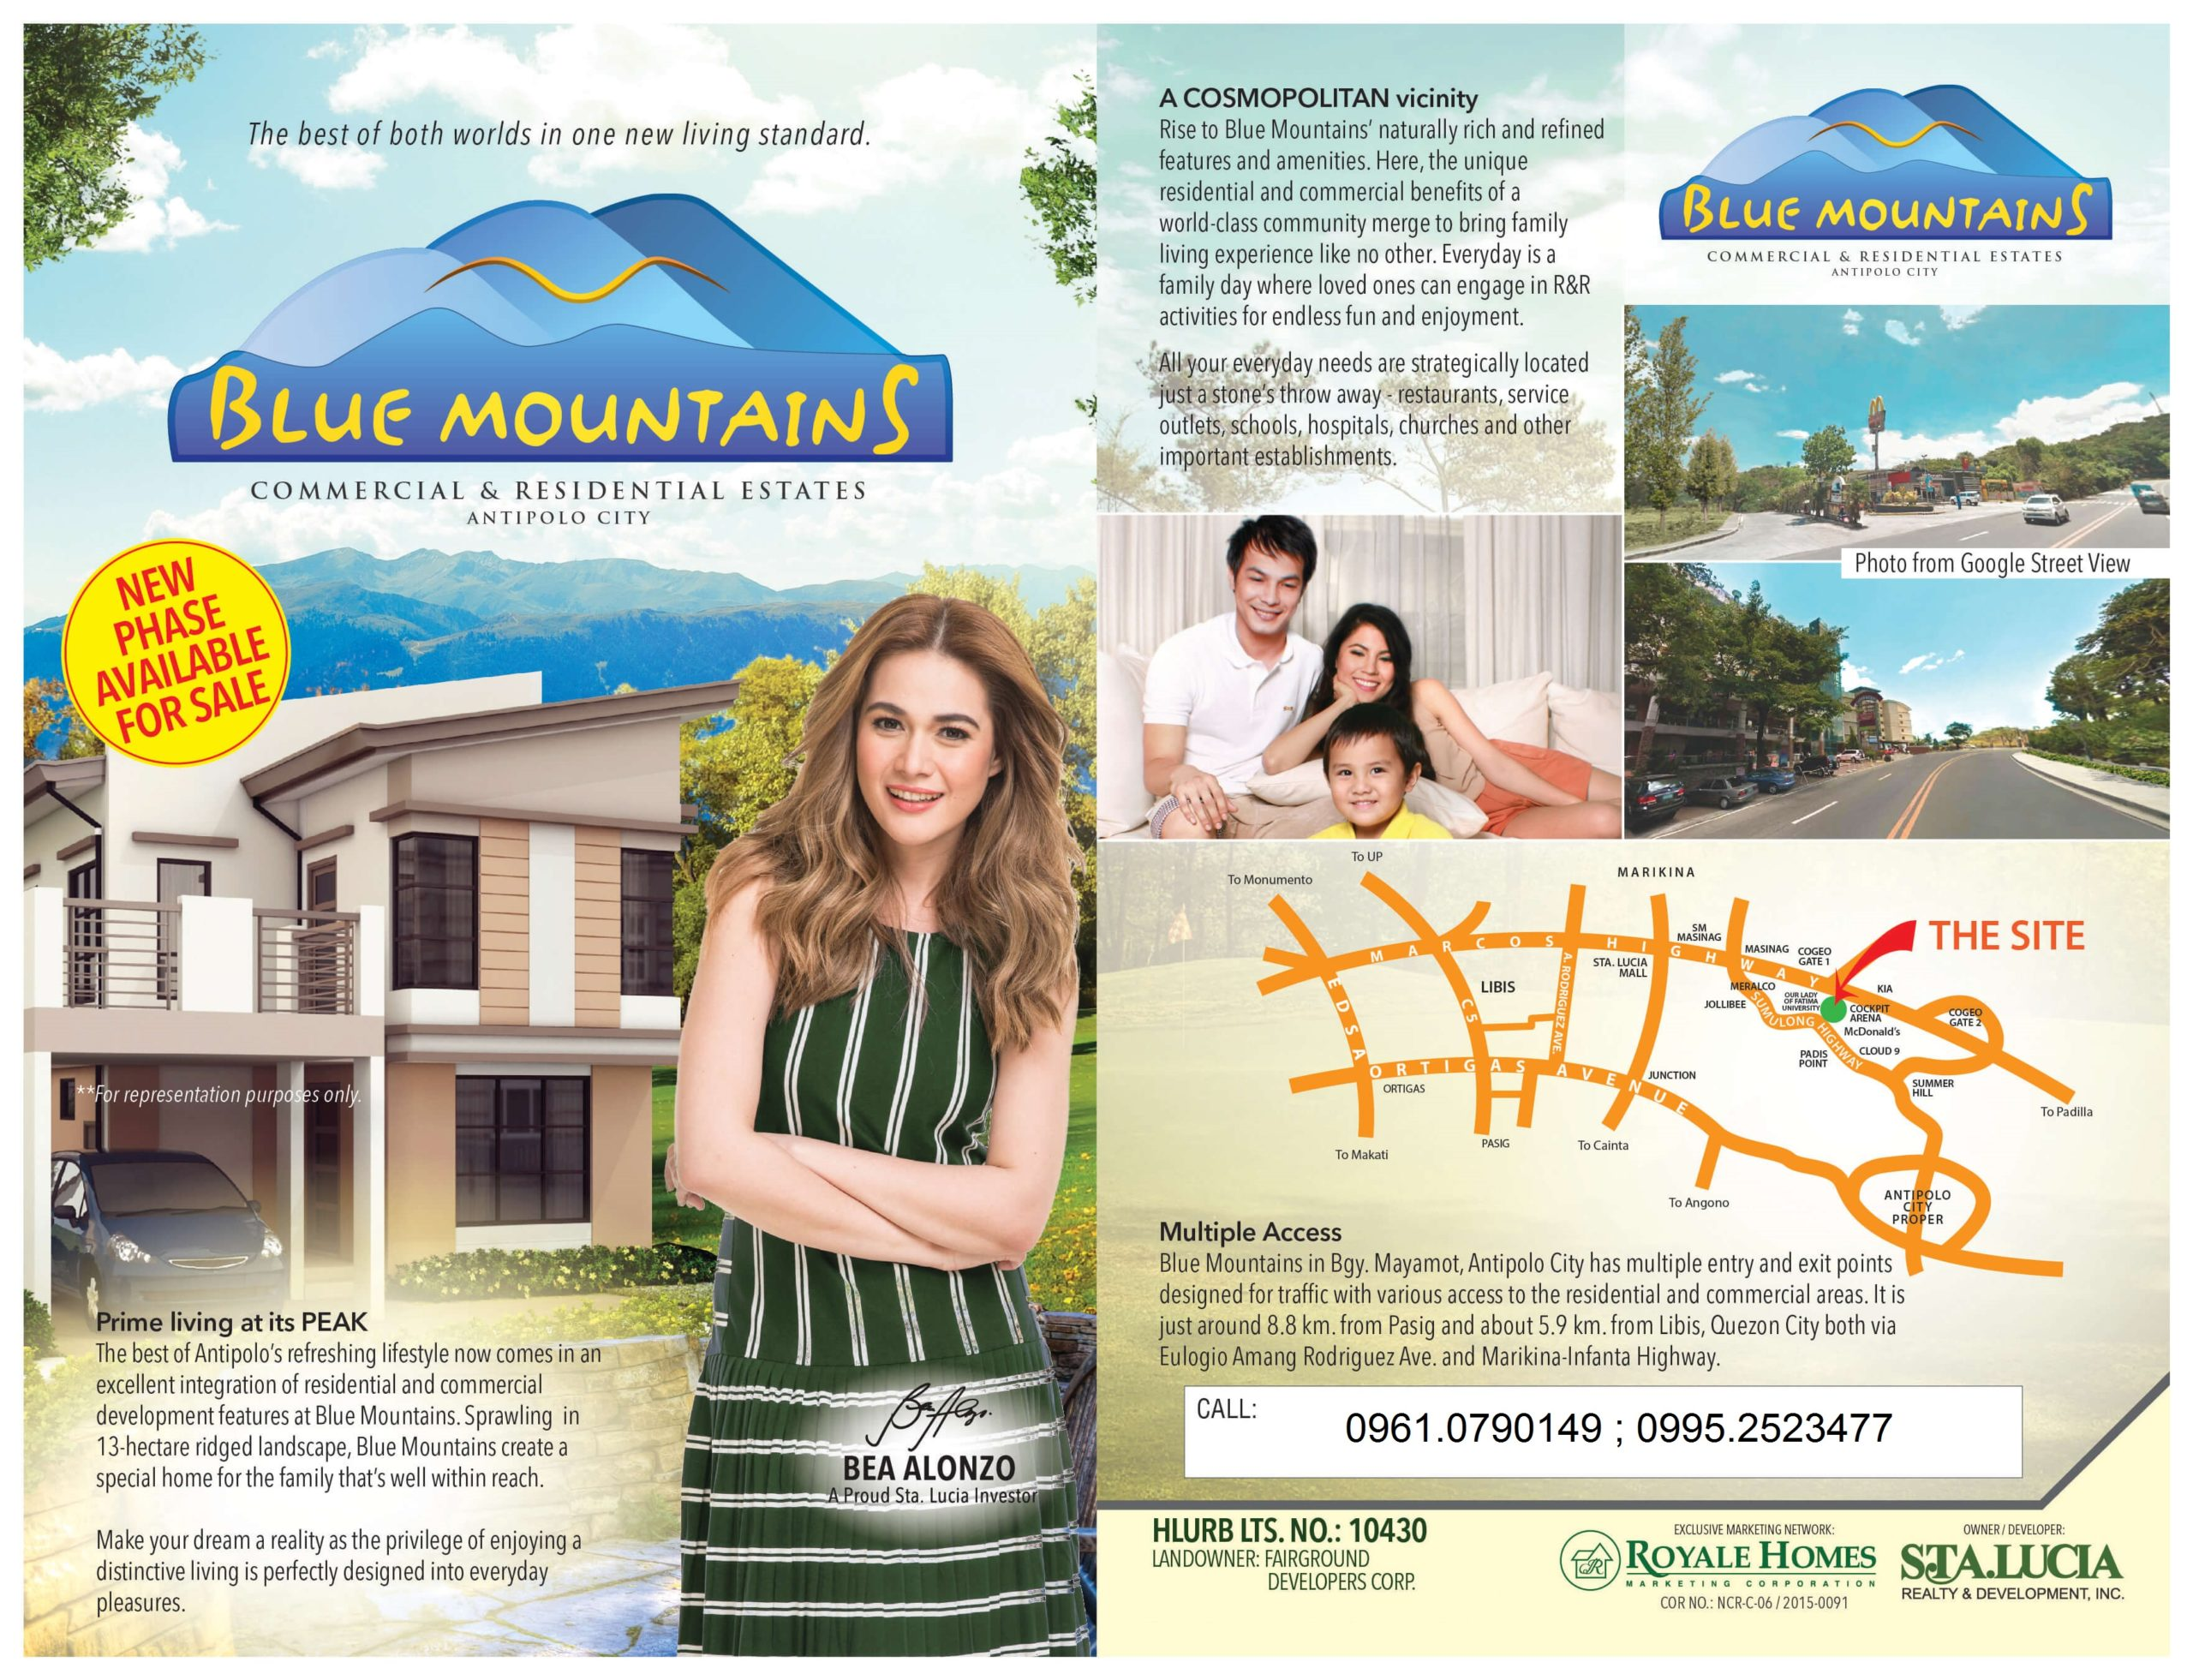 Over looking lot for sale in Antipolo Rizal at Blue Mountain